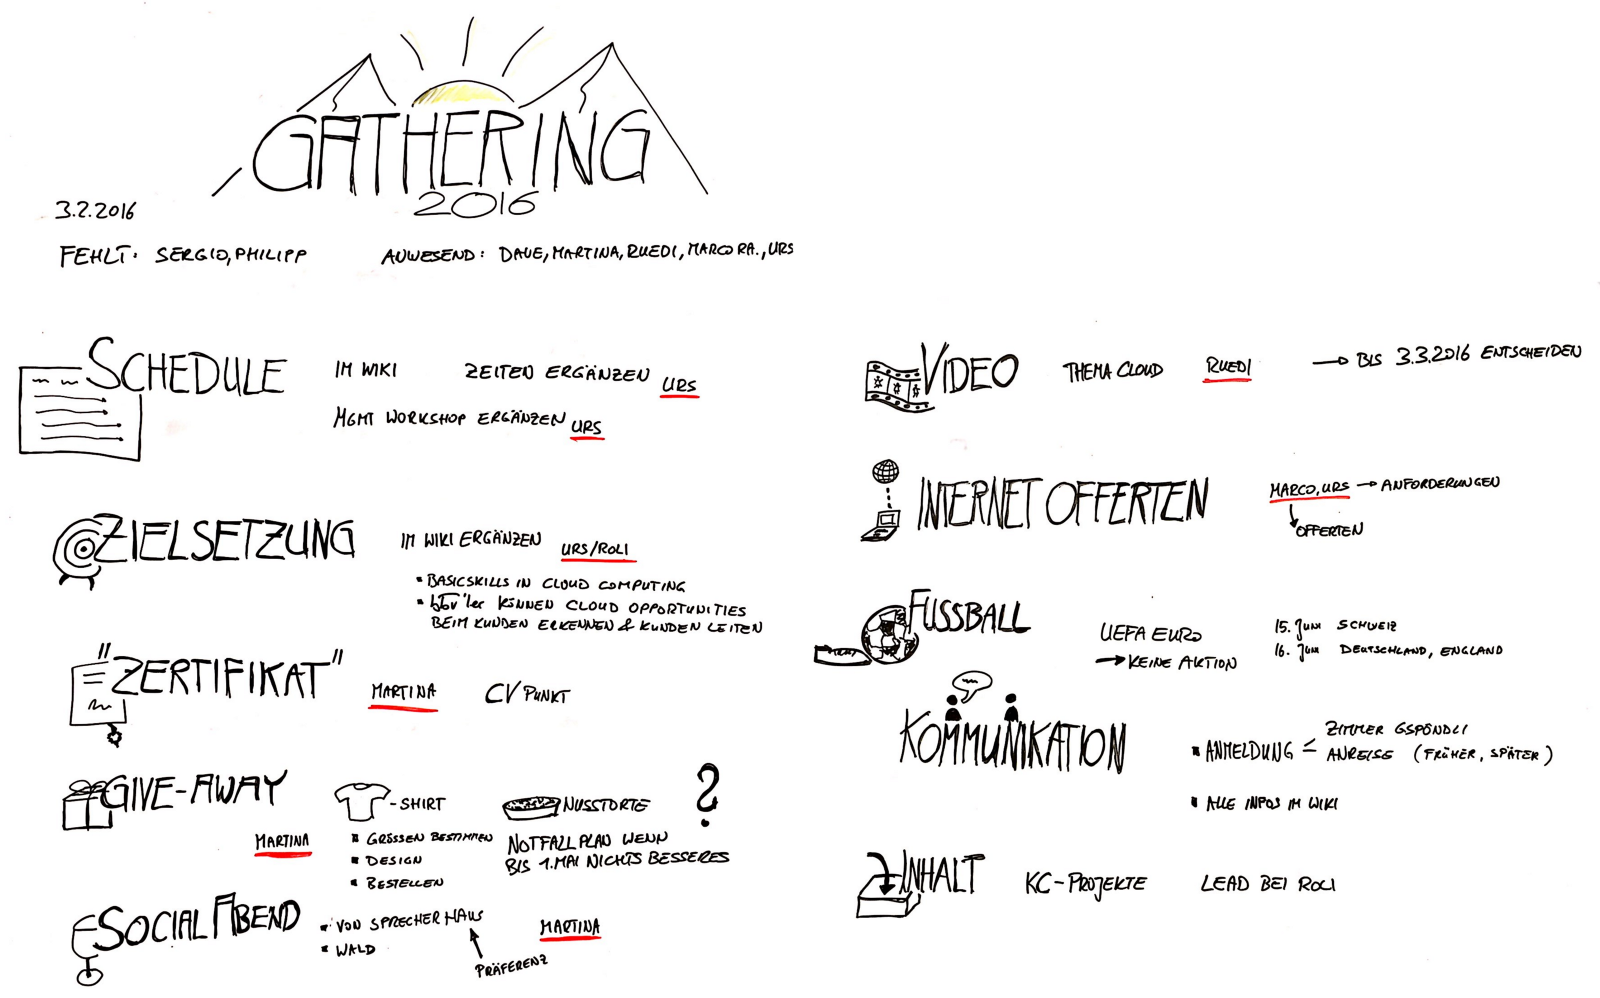 the meeting minutes